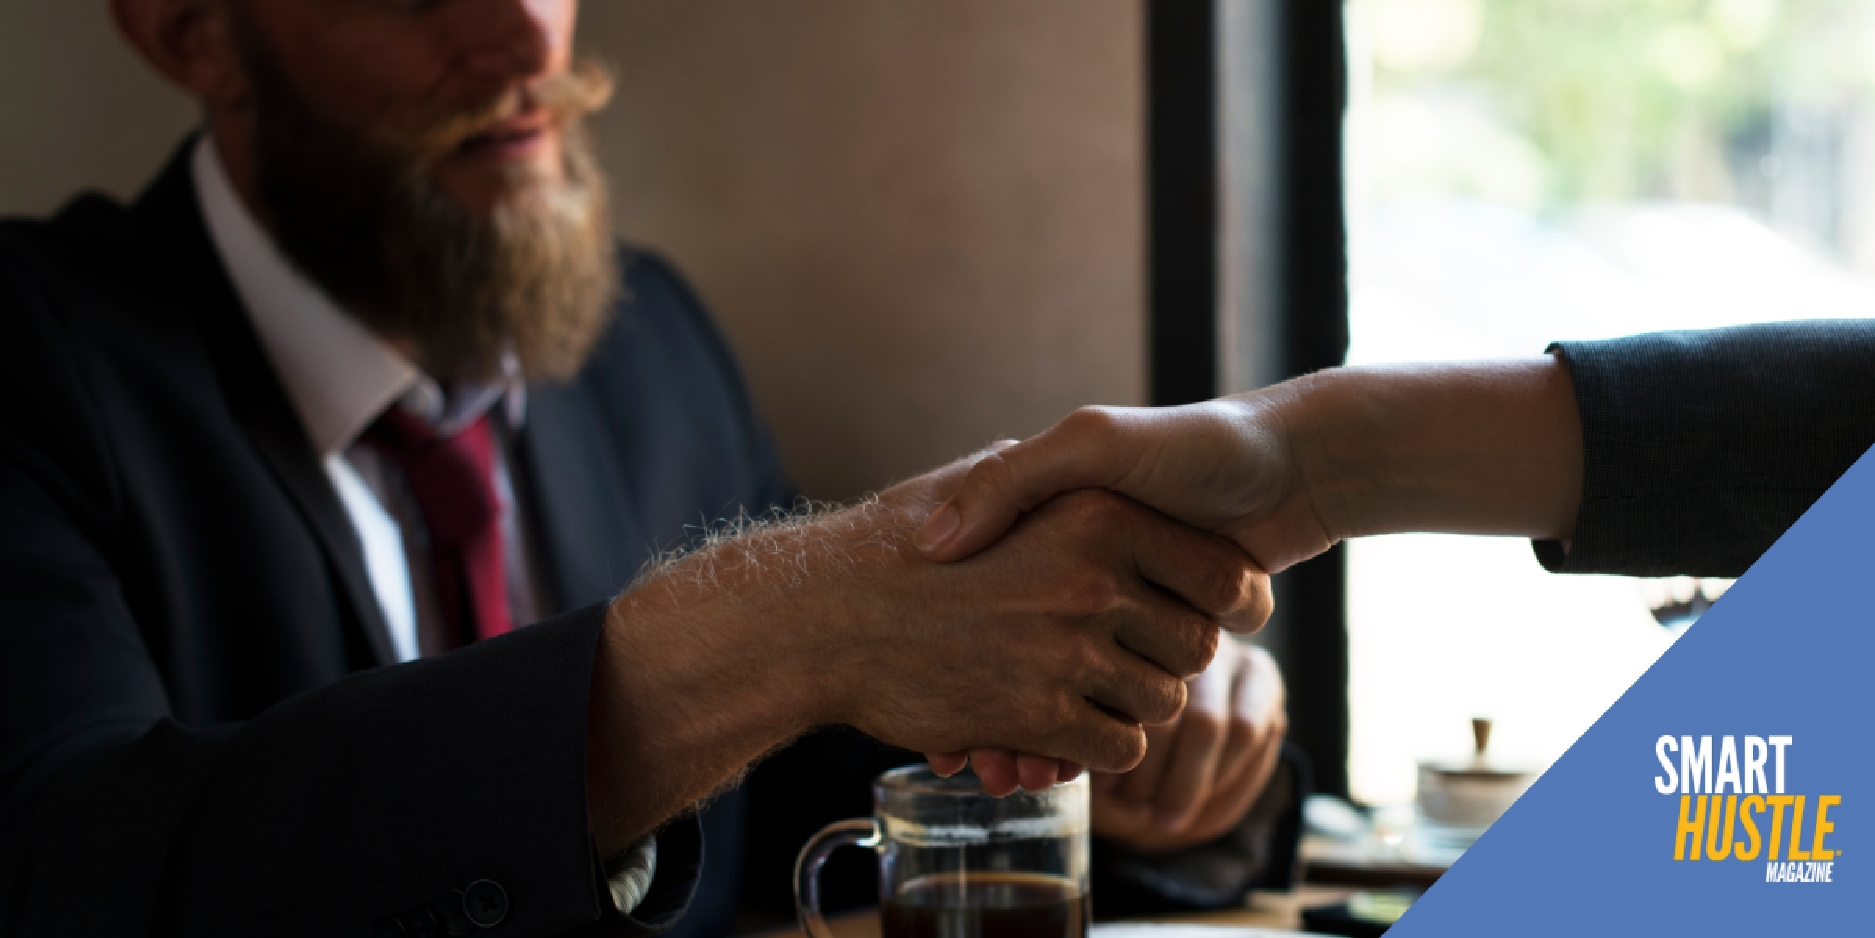 Referrals: A Small Business's Secret Sales Weapon